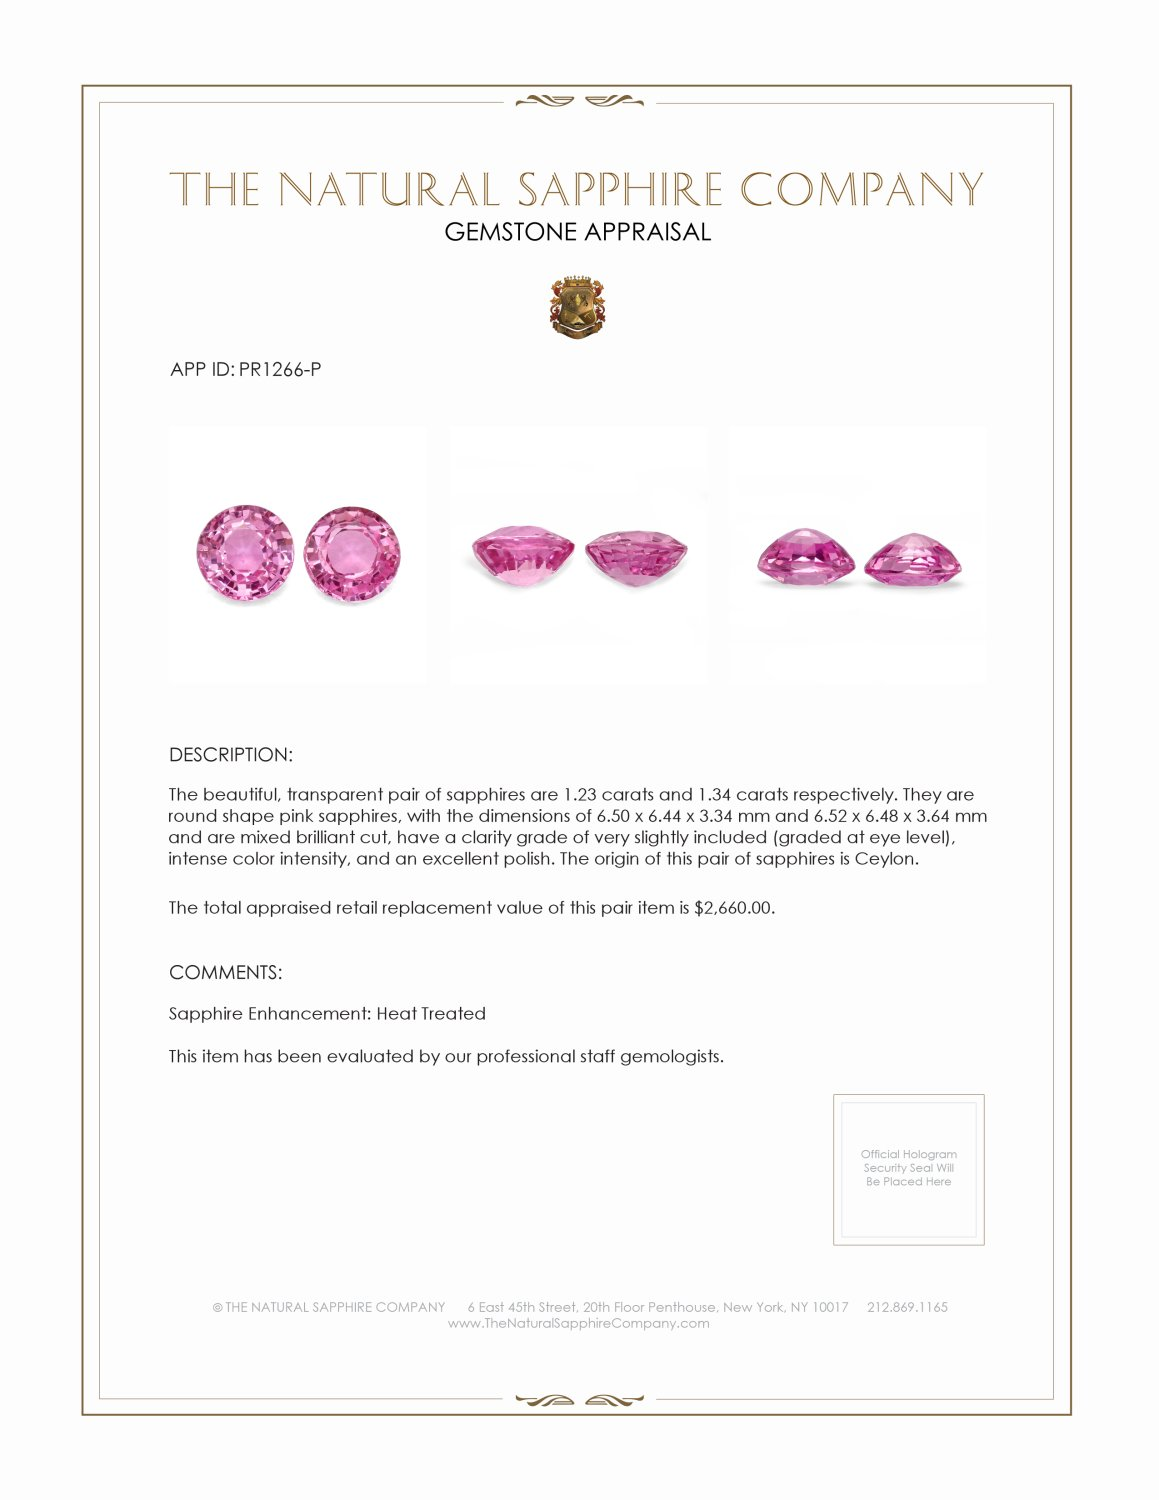 PAIR (H) PINK SAPPHIRE ROUNDS 2.57CTW PR1266-P Certification 2